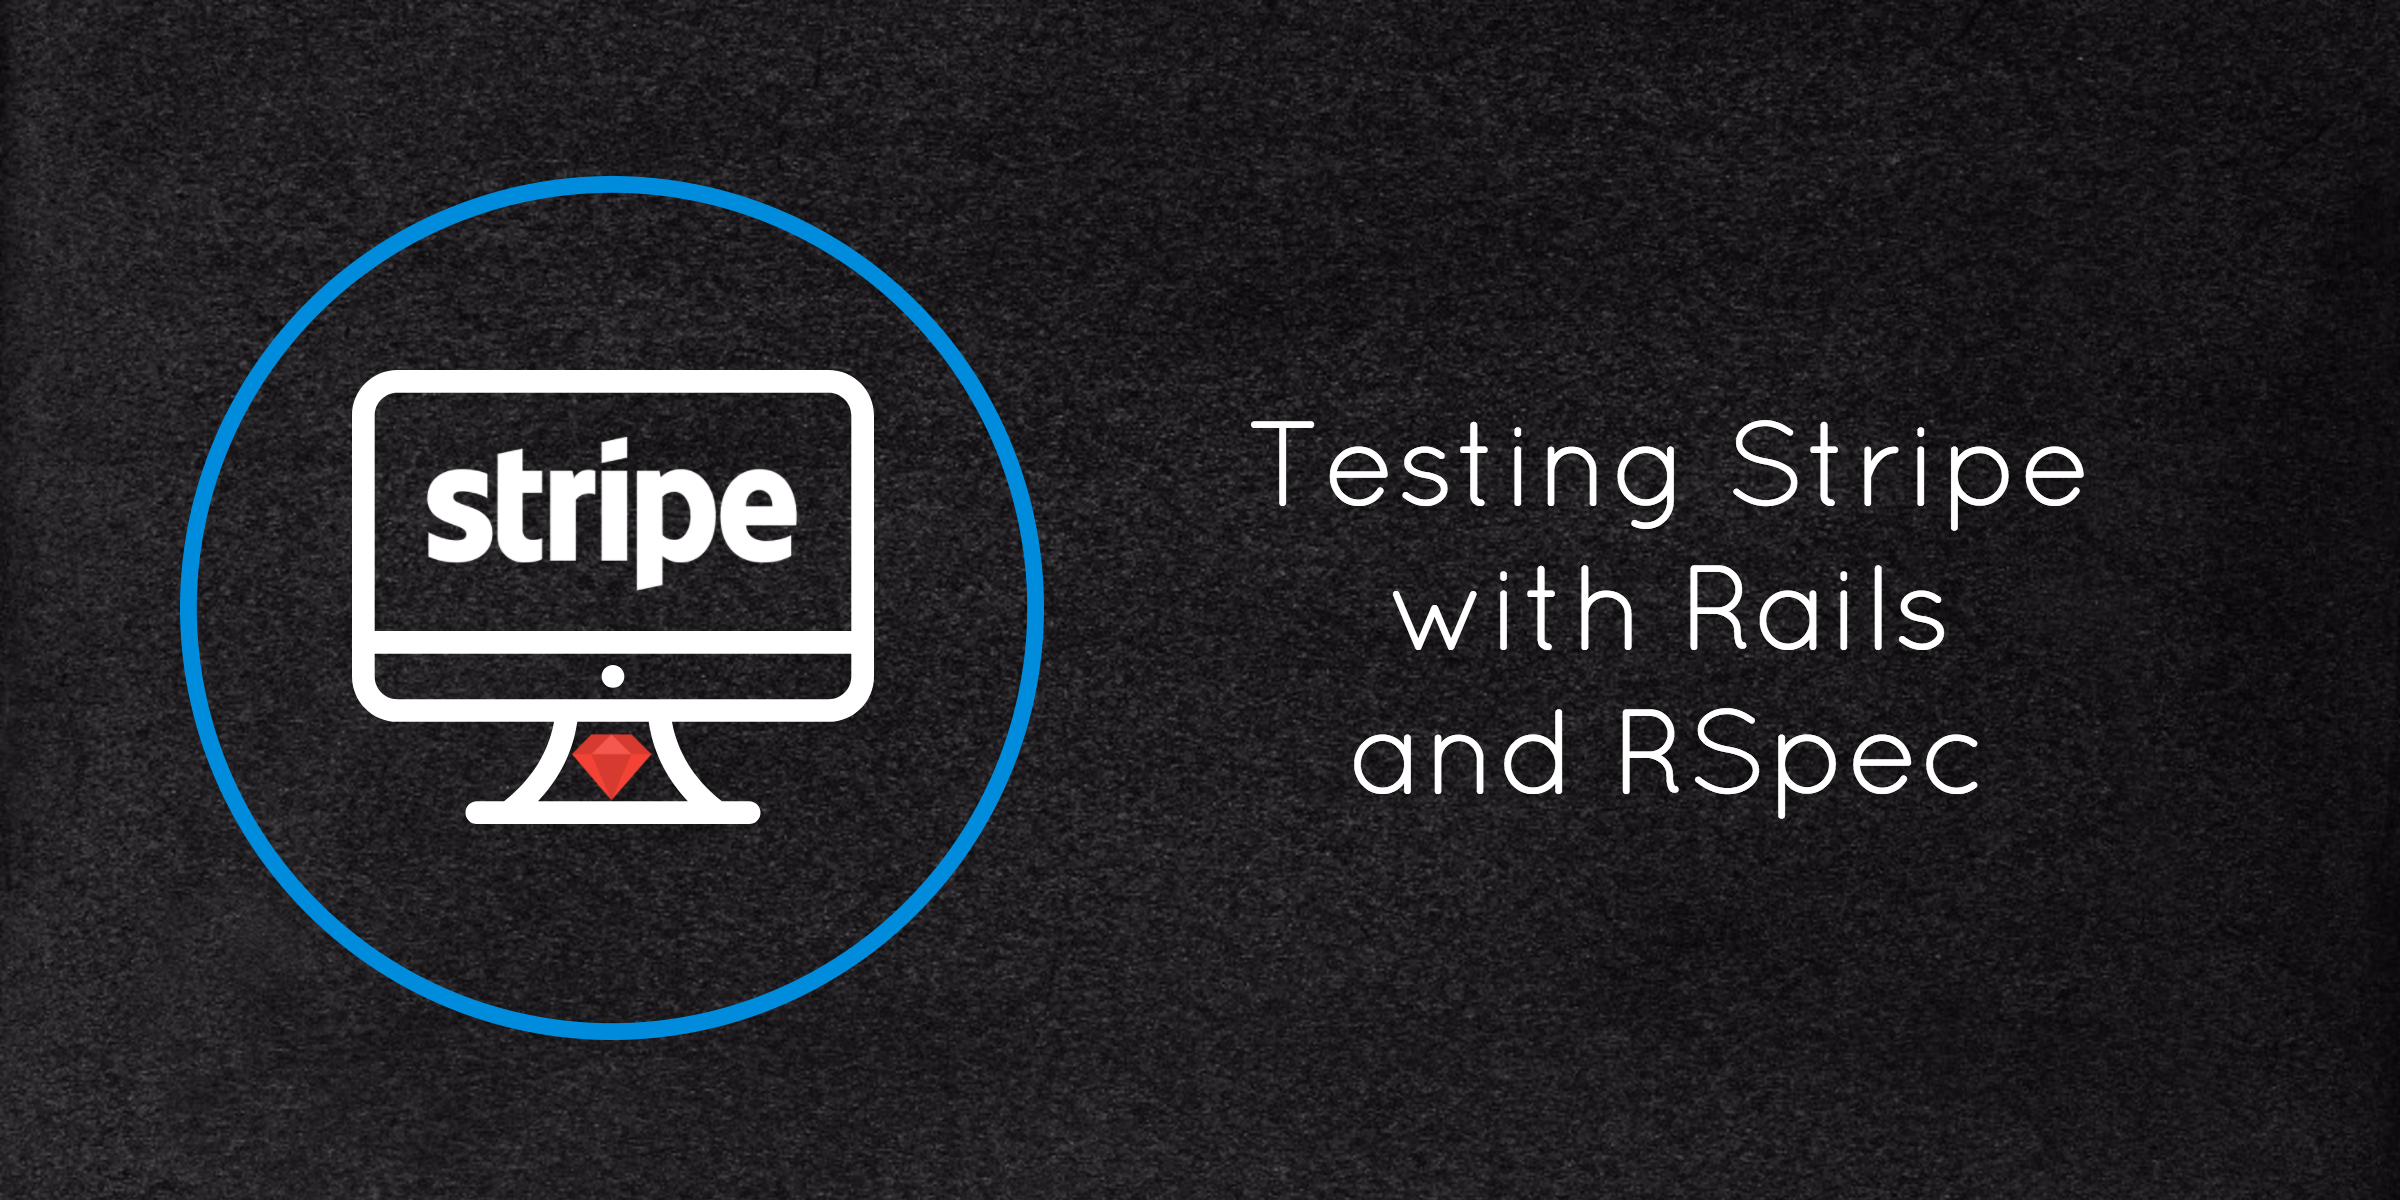 Testing Stripe with Rails and RSpec - By